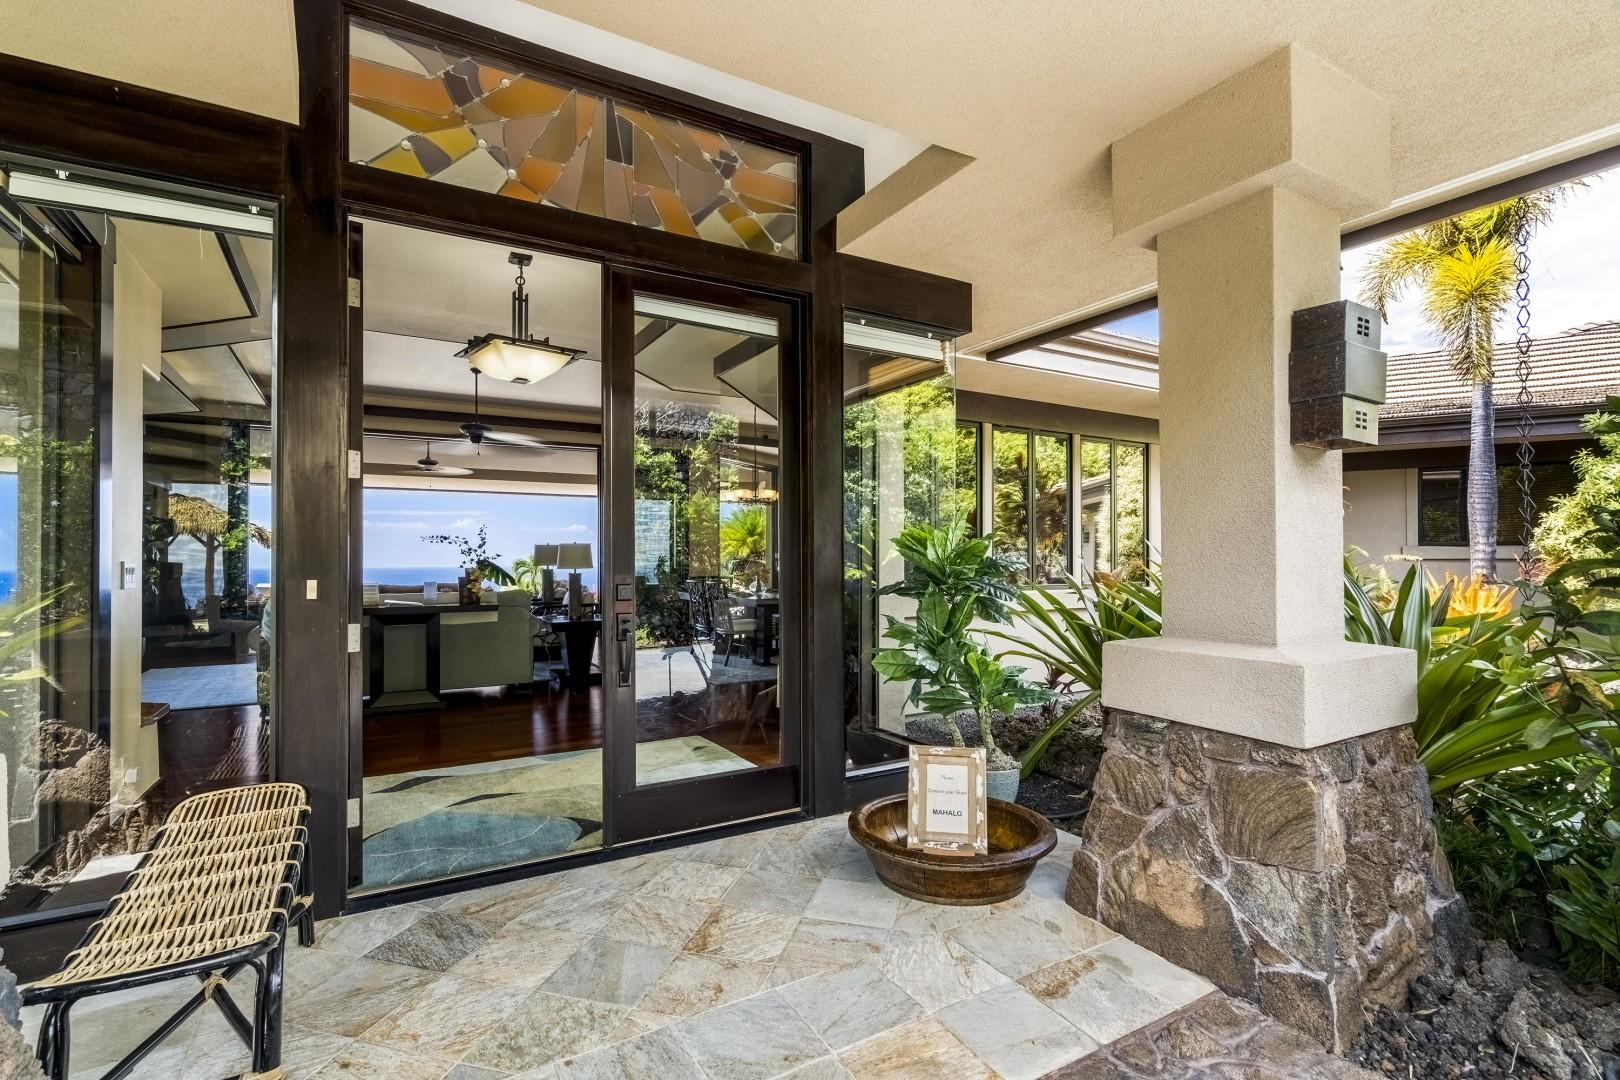 Open the doors to your dream vacation!